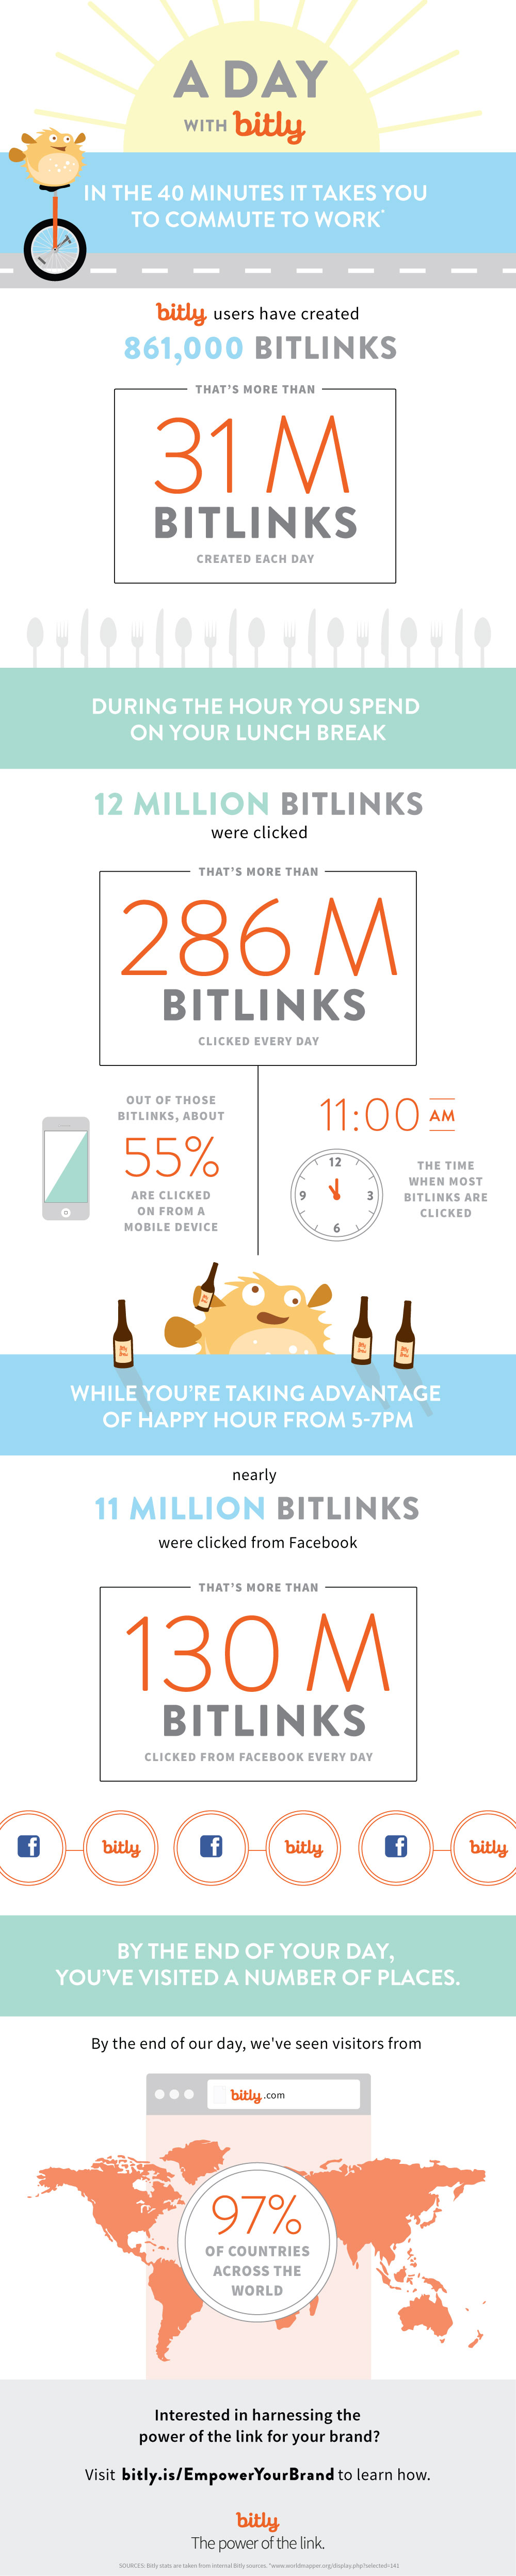 Infographic-A-Day-With-Bitly